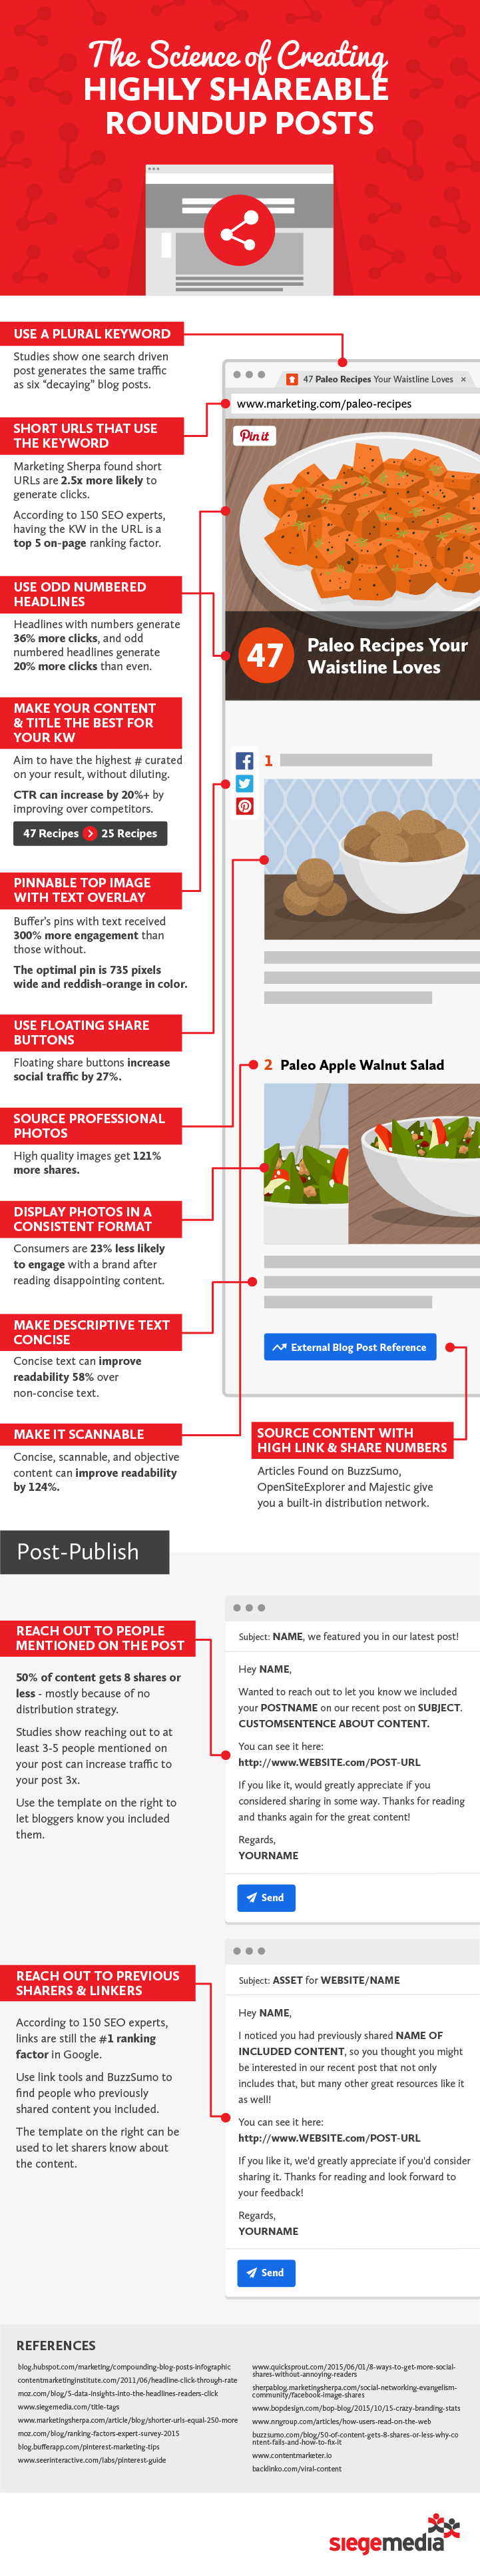 science-of-shareable-roundup-posts-infographic.png